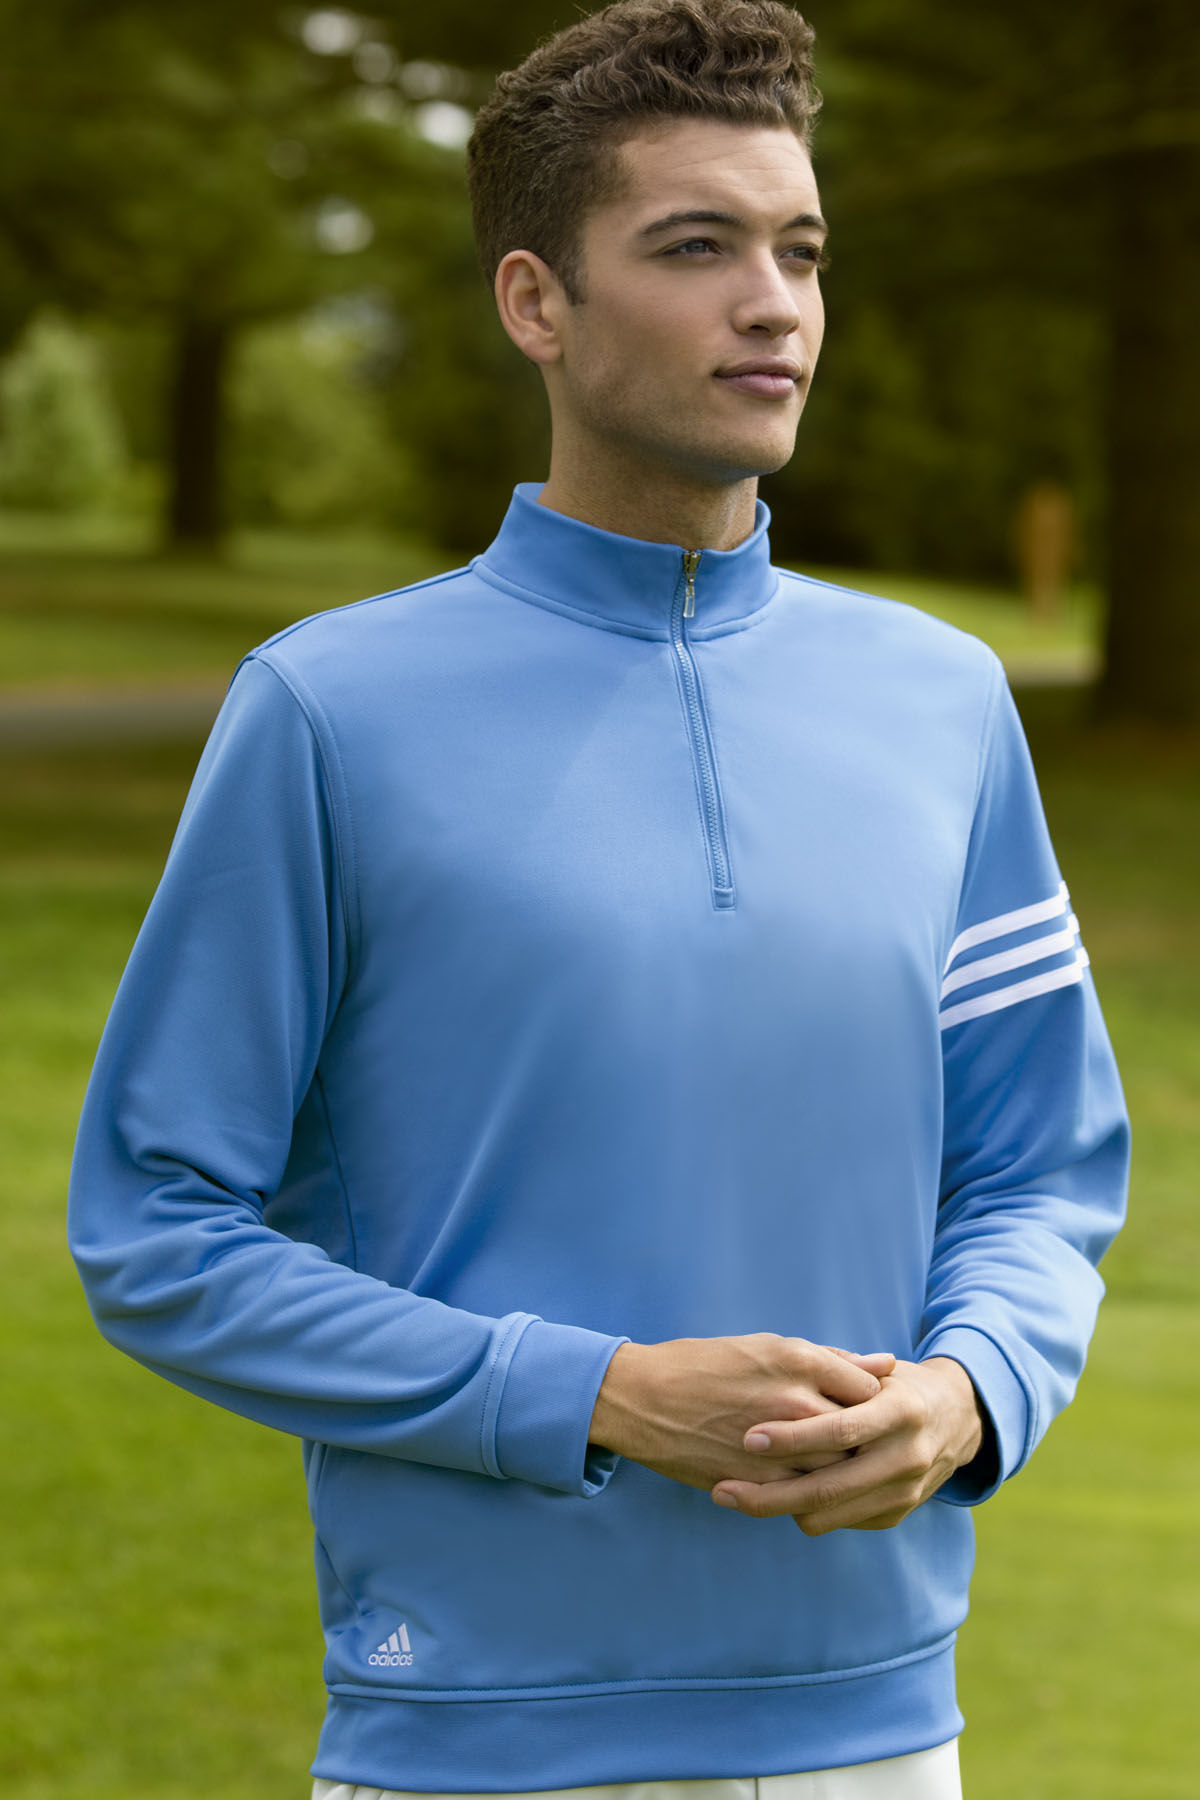 adidas ADIDA190 - ClimaLite® 3-Stripes Pullover